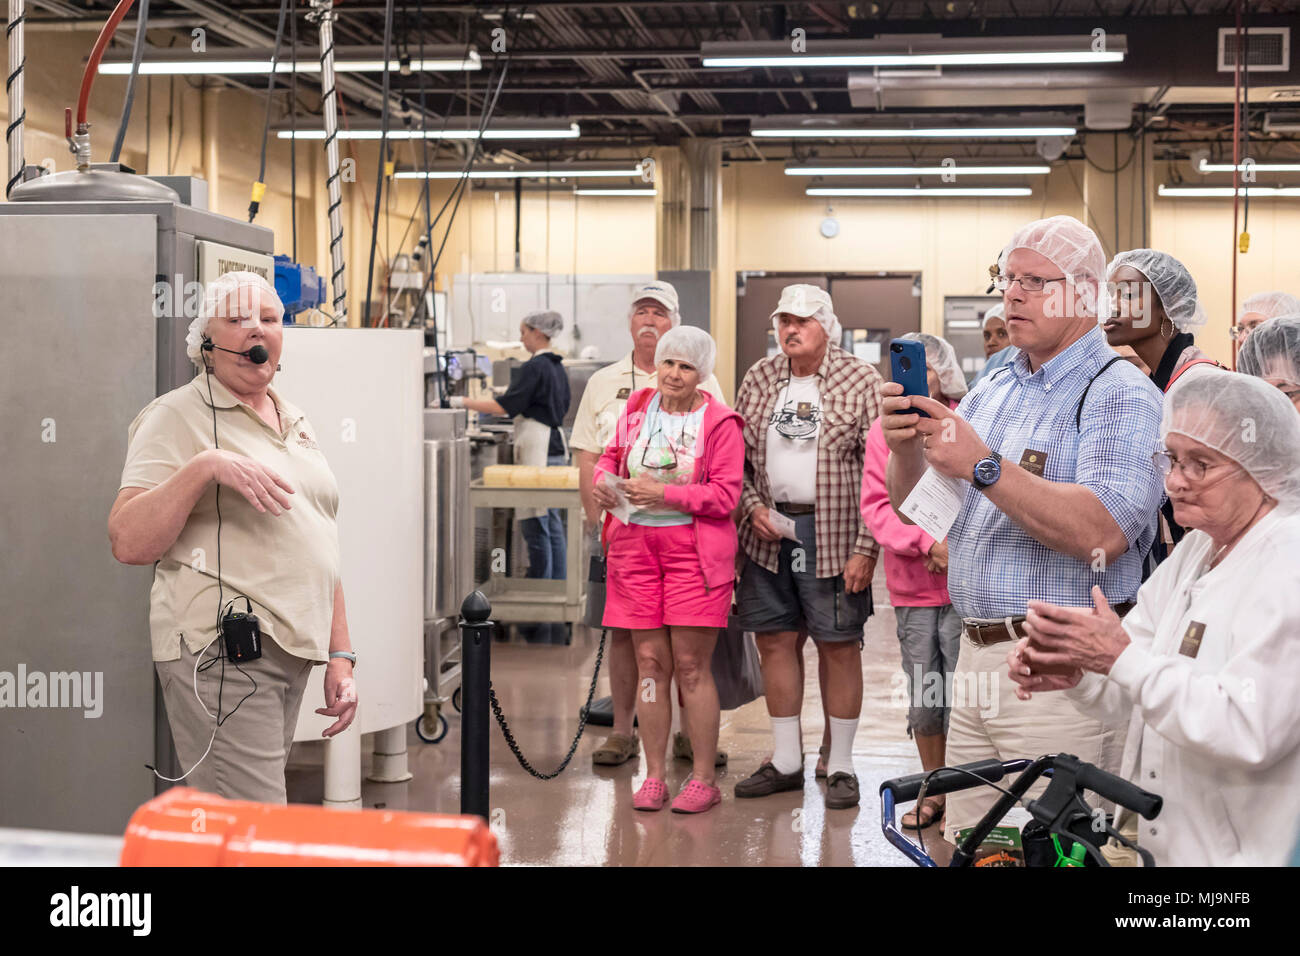 St. Augustine, Florida - A tour group visits the Whetstone Chocolates factory. The company makes and sells artisan chocolates in St. Augustine's histo - Stock Image